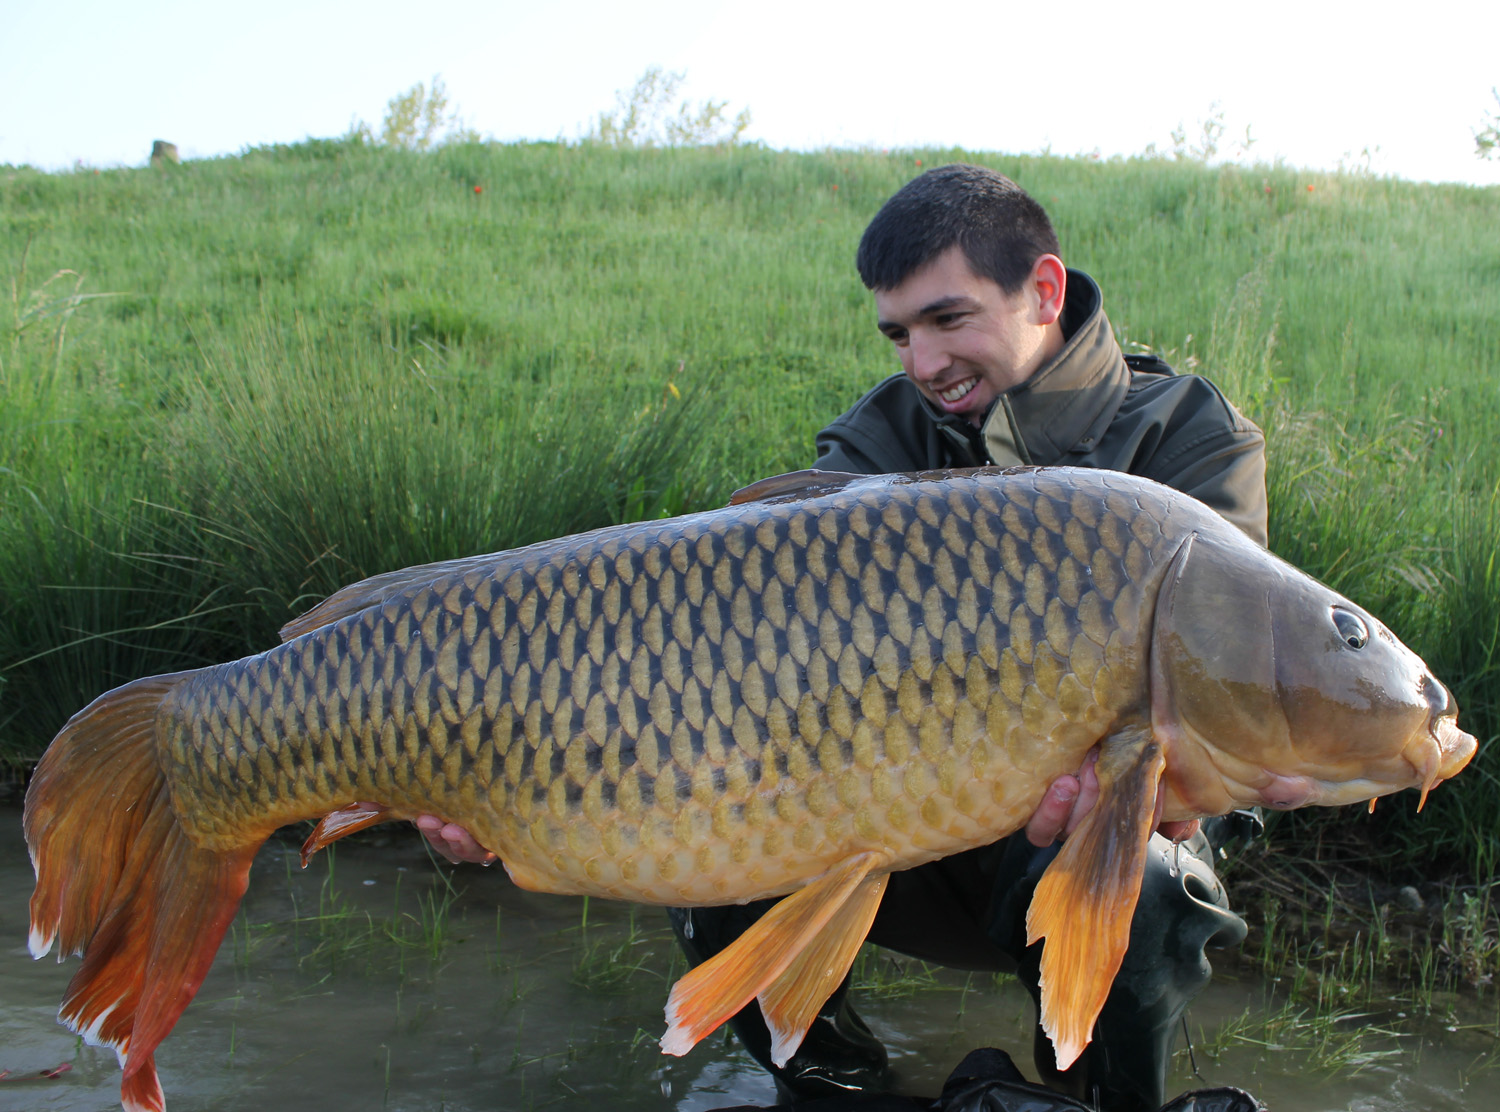 http://starbaits.com/fichiers/images/team/gallery/DUCERE_Cedric/6-DUCERE-CEDRIC.JPG